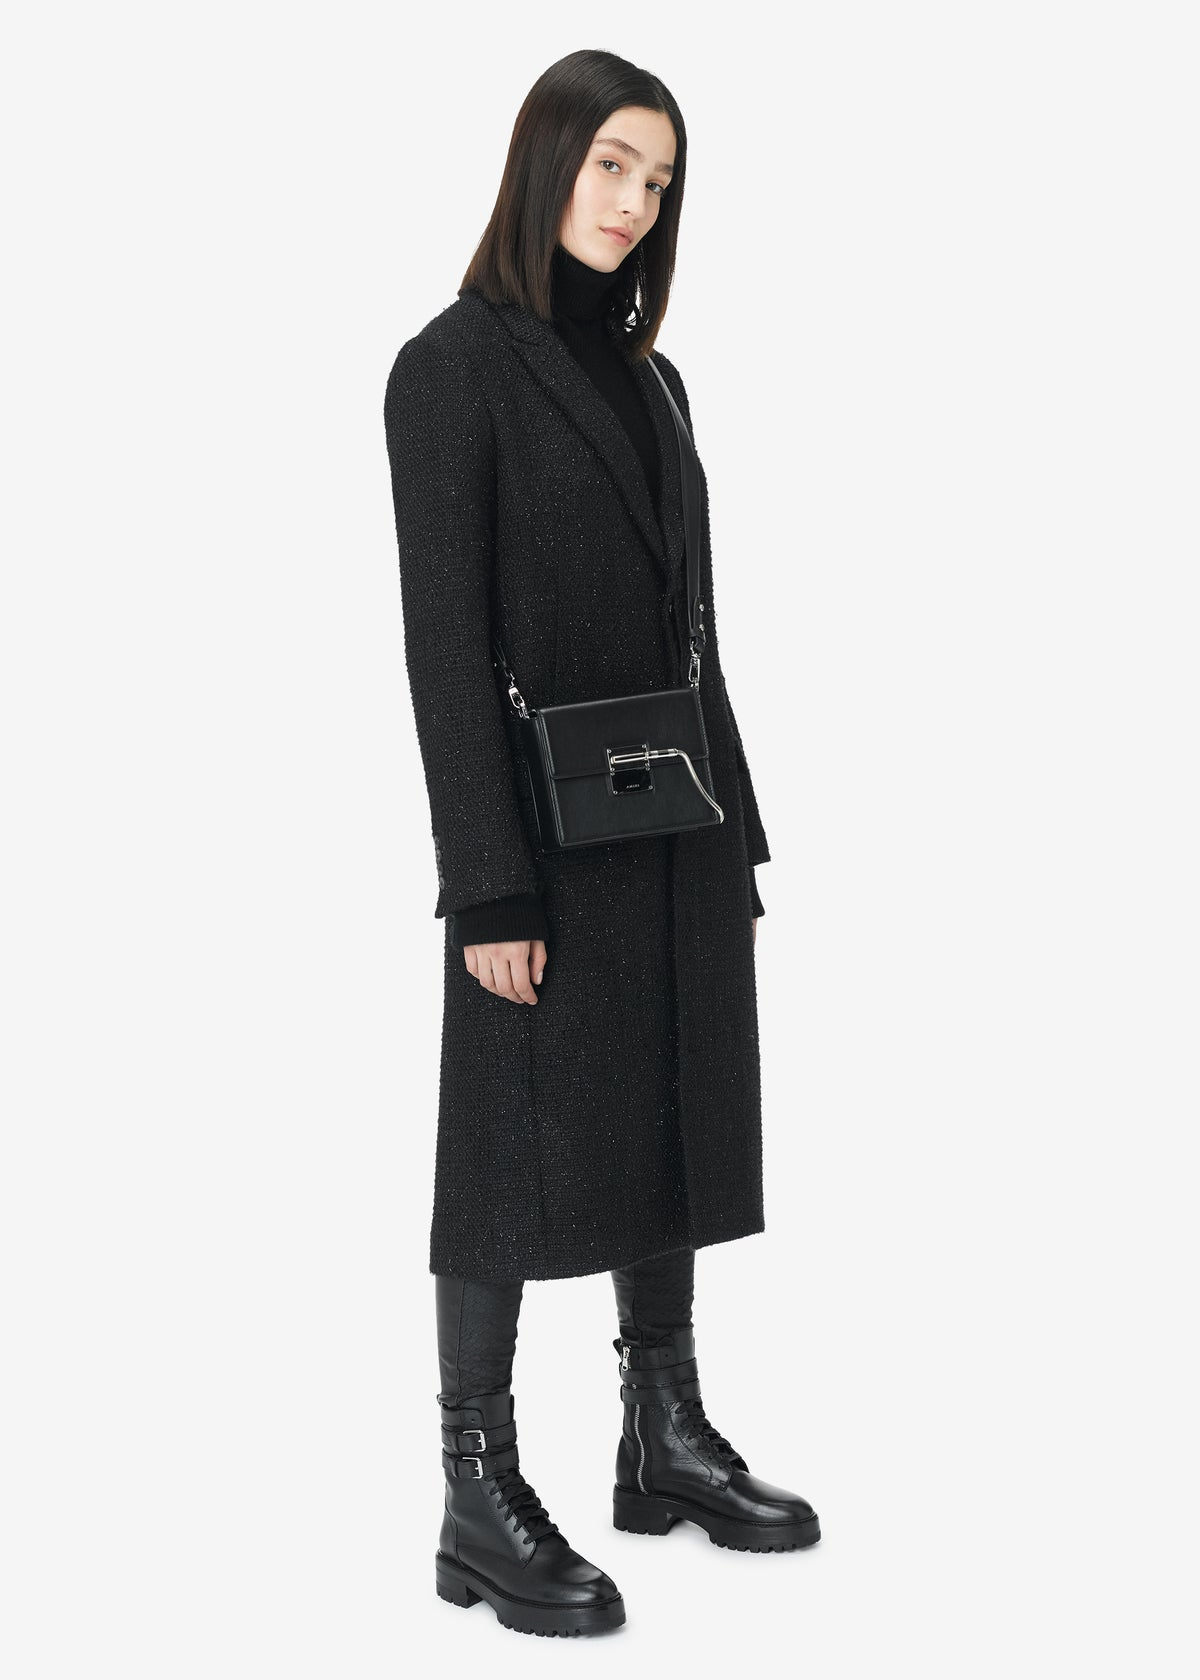 files/W_Outerwear_Boucle_Fitted_Coat_Blk_RESHOOT_010.jpg